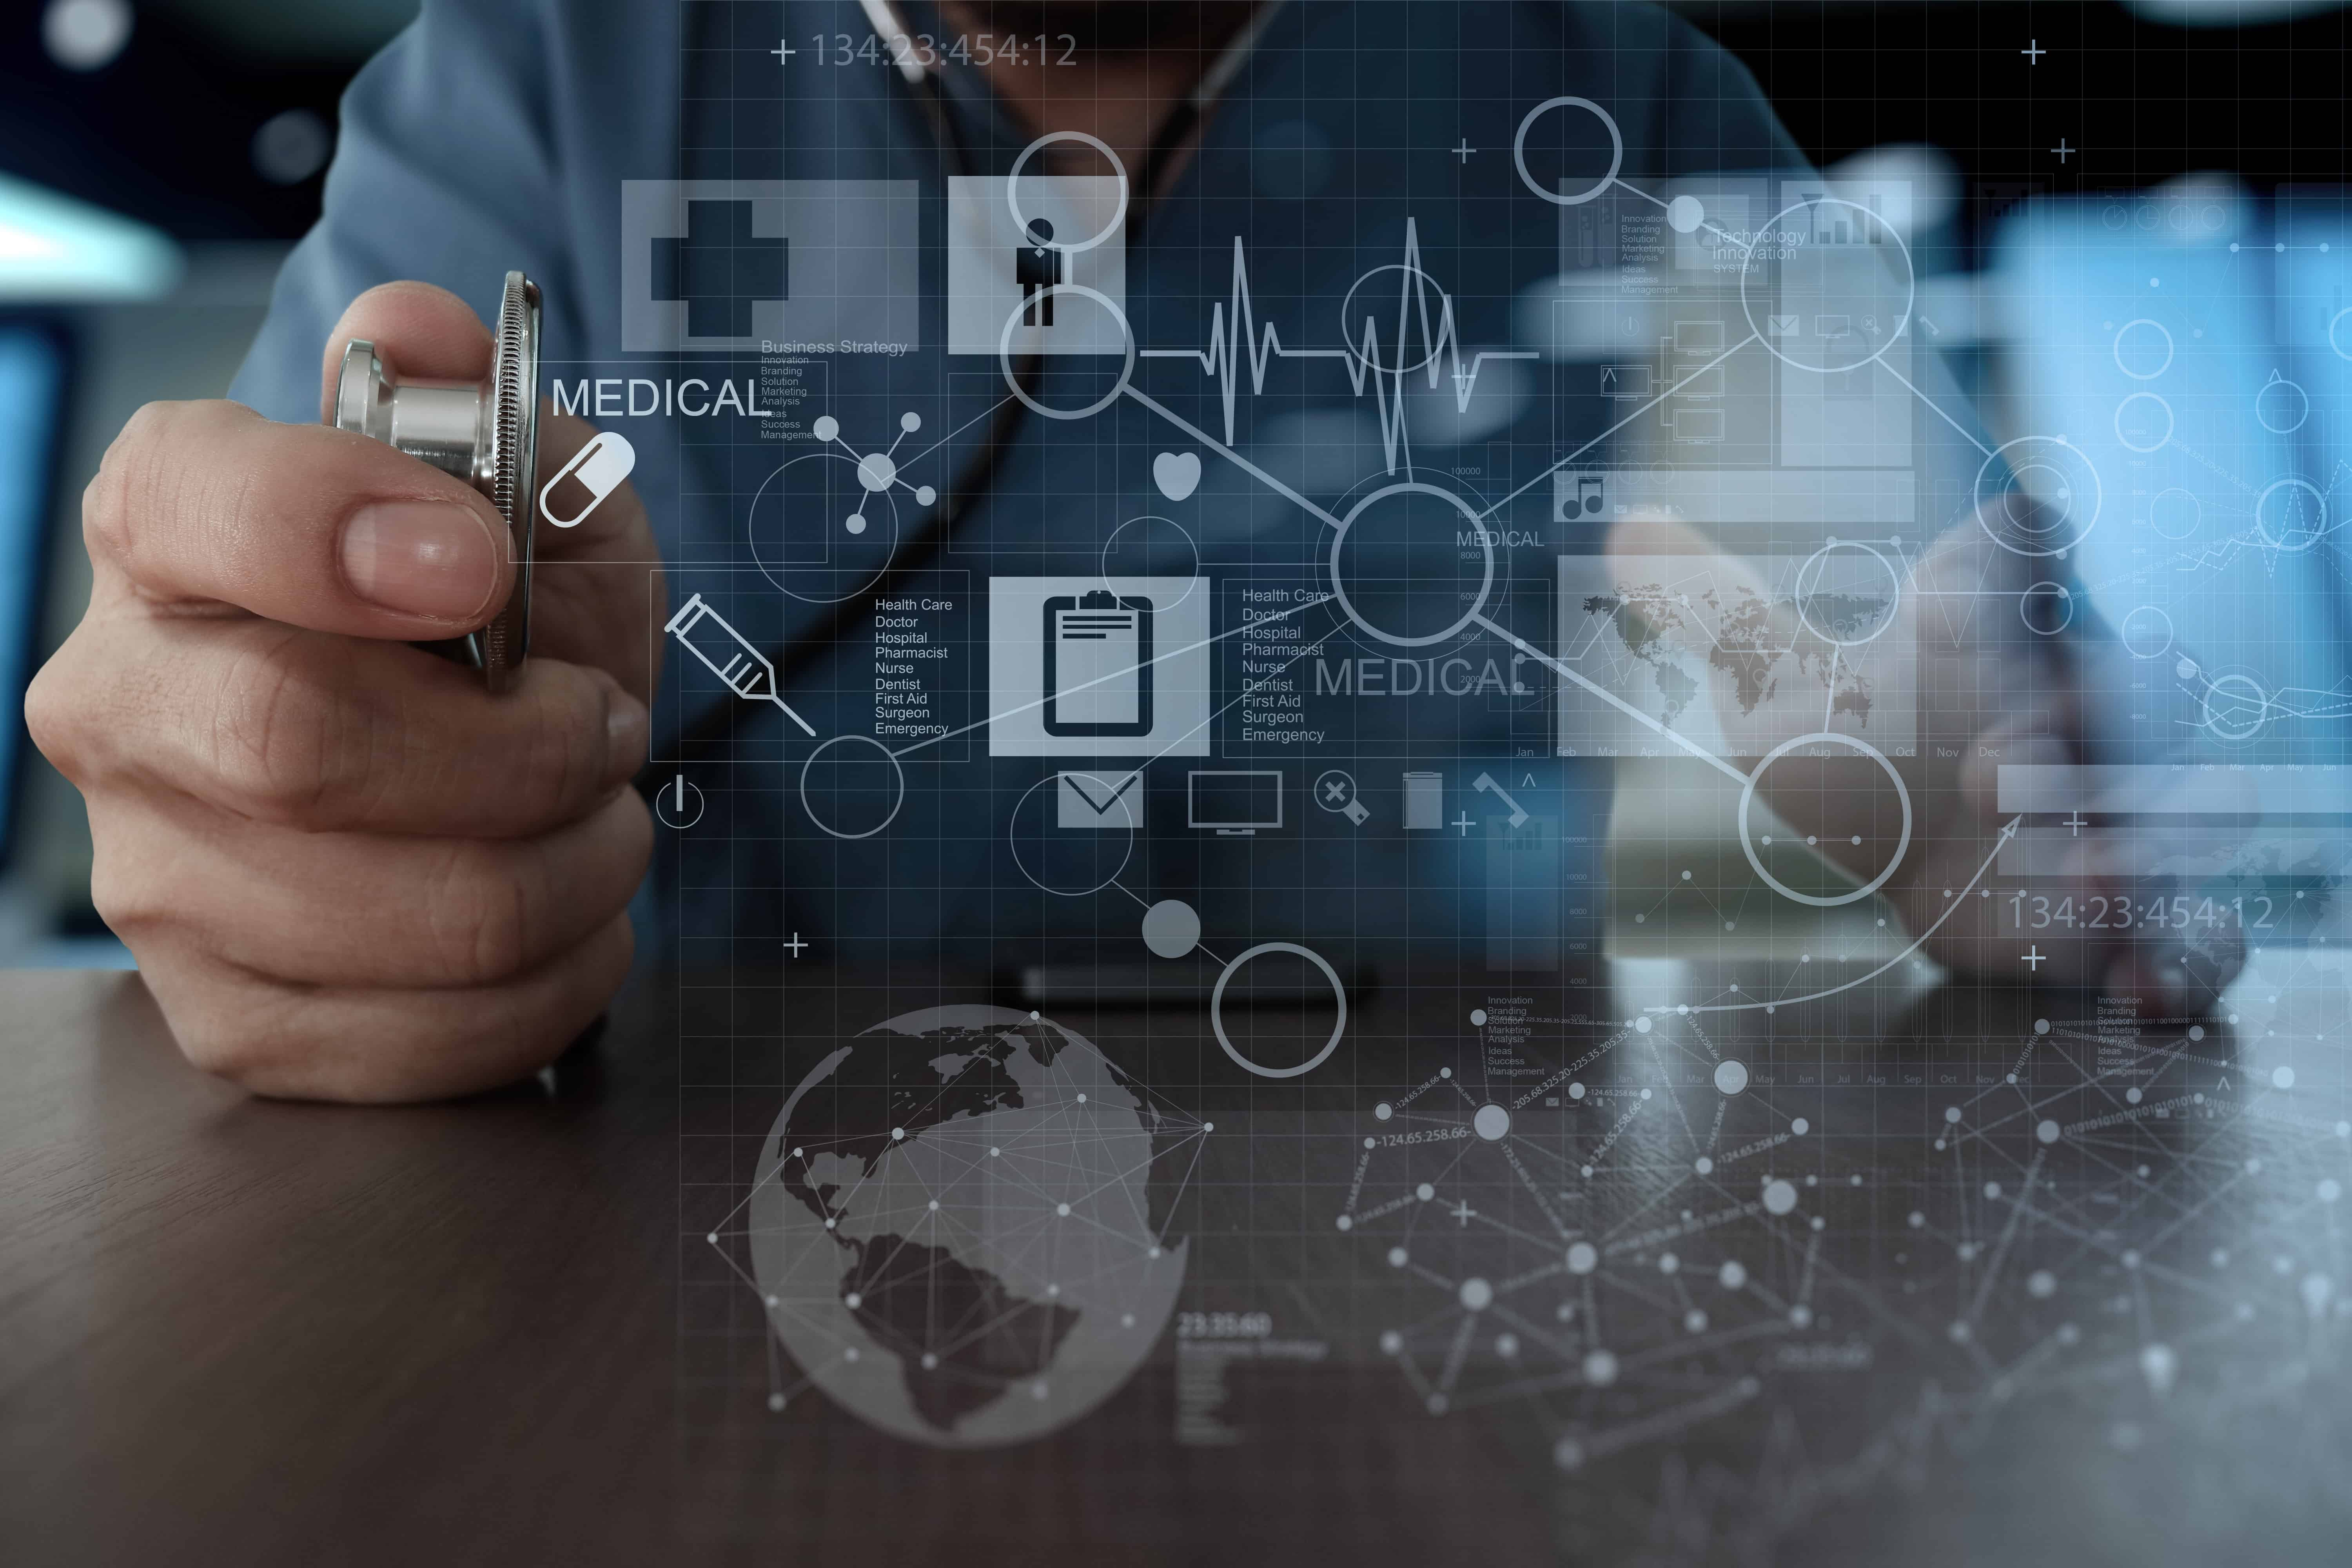 scaling up virtual health care